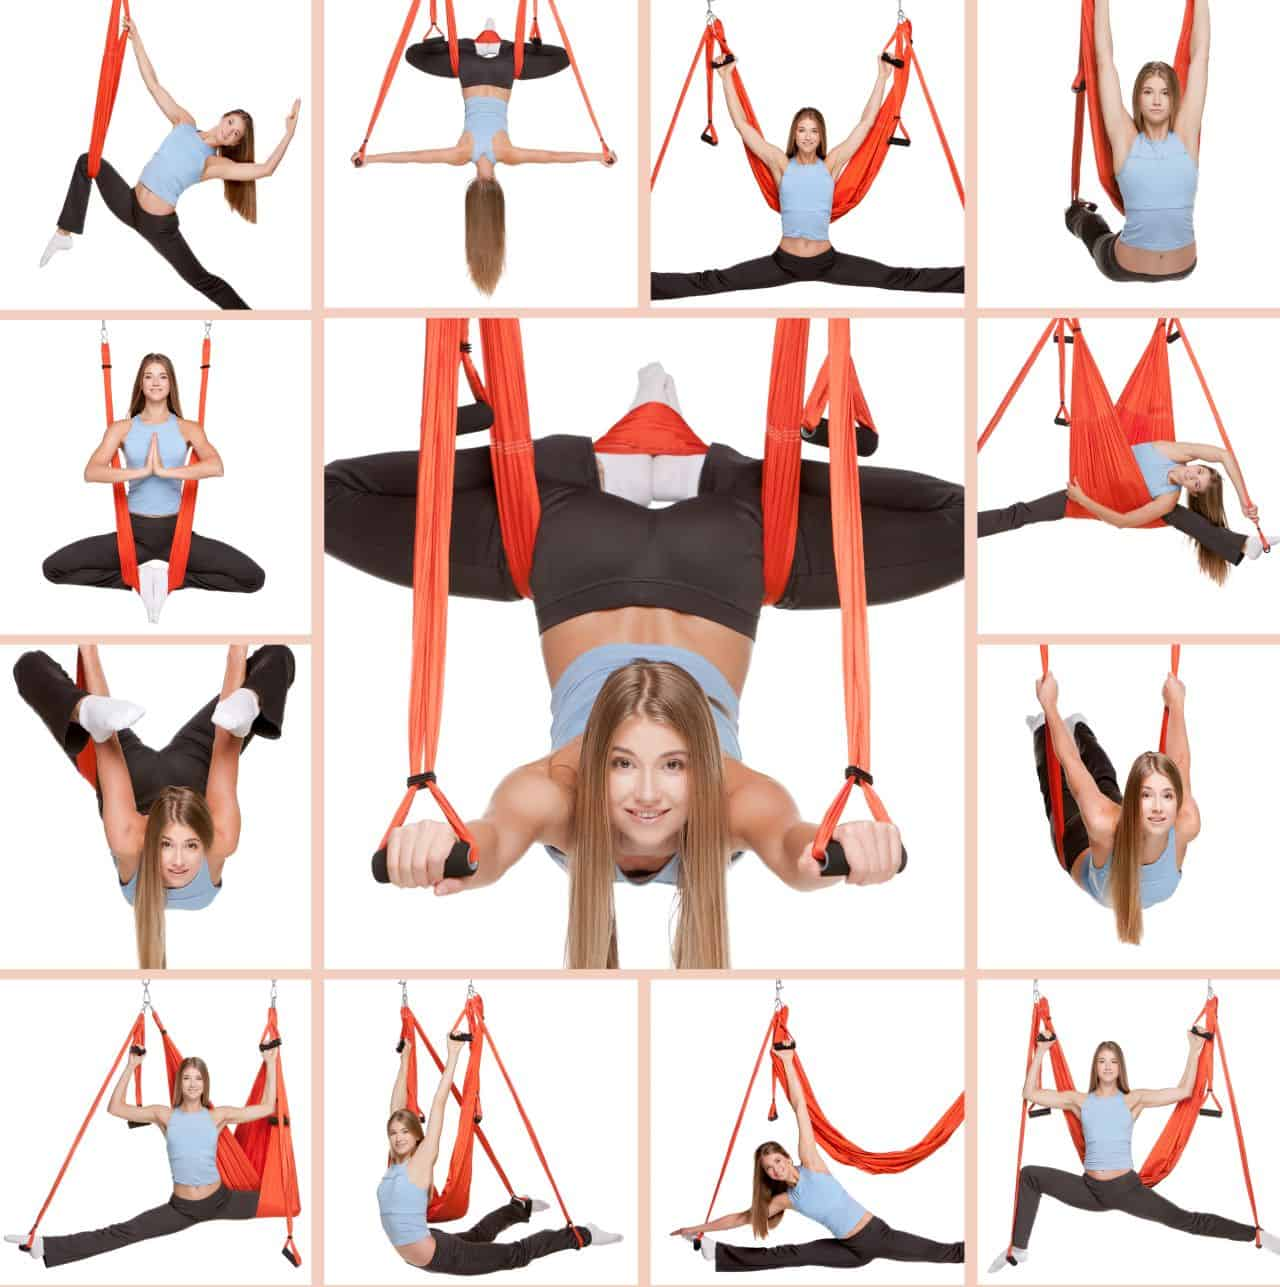 Different Poses on Inversion Swing